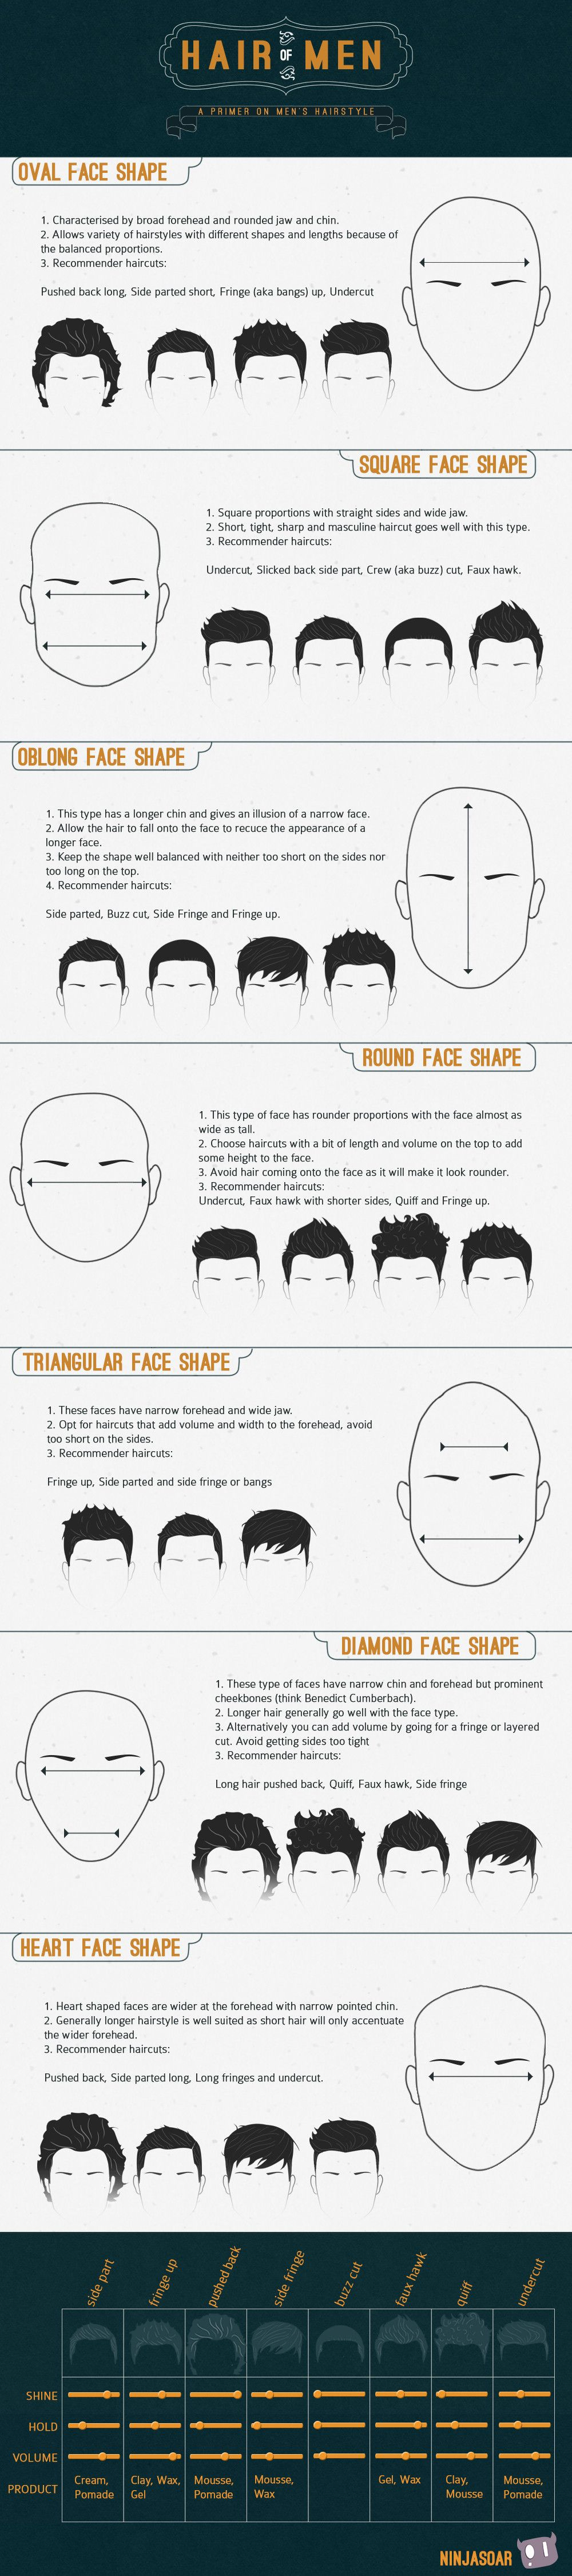 Oblong face haircut men hair of men  menus hair  pinterest  cabello estilo peinado and